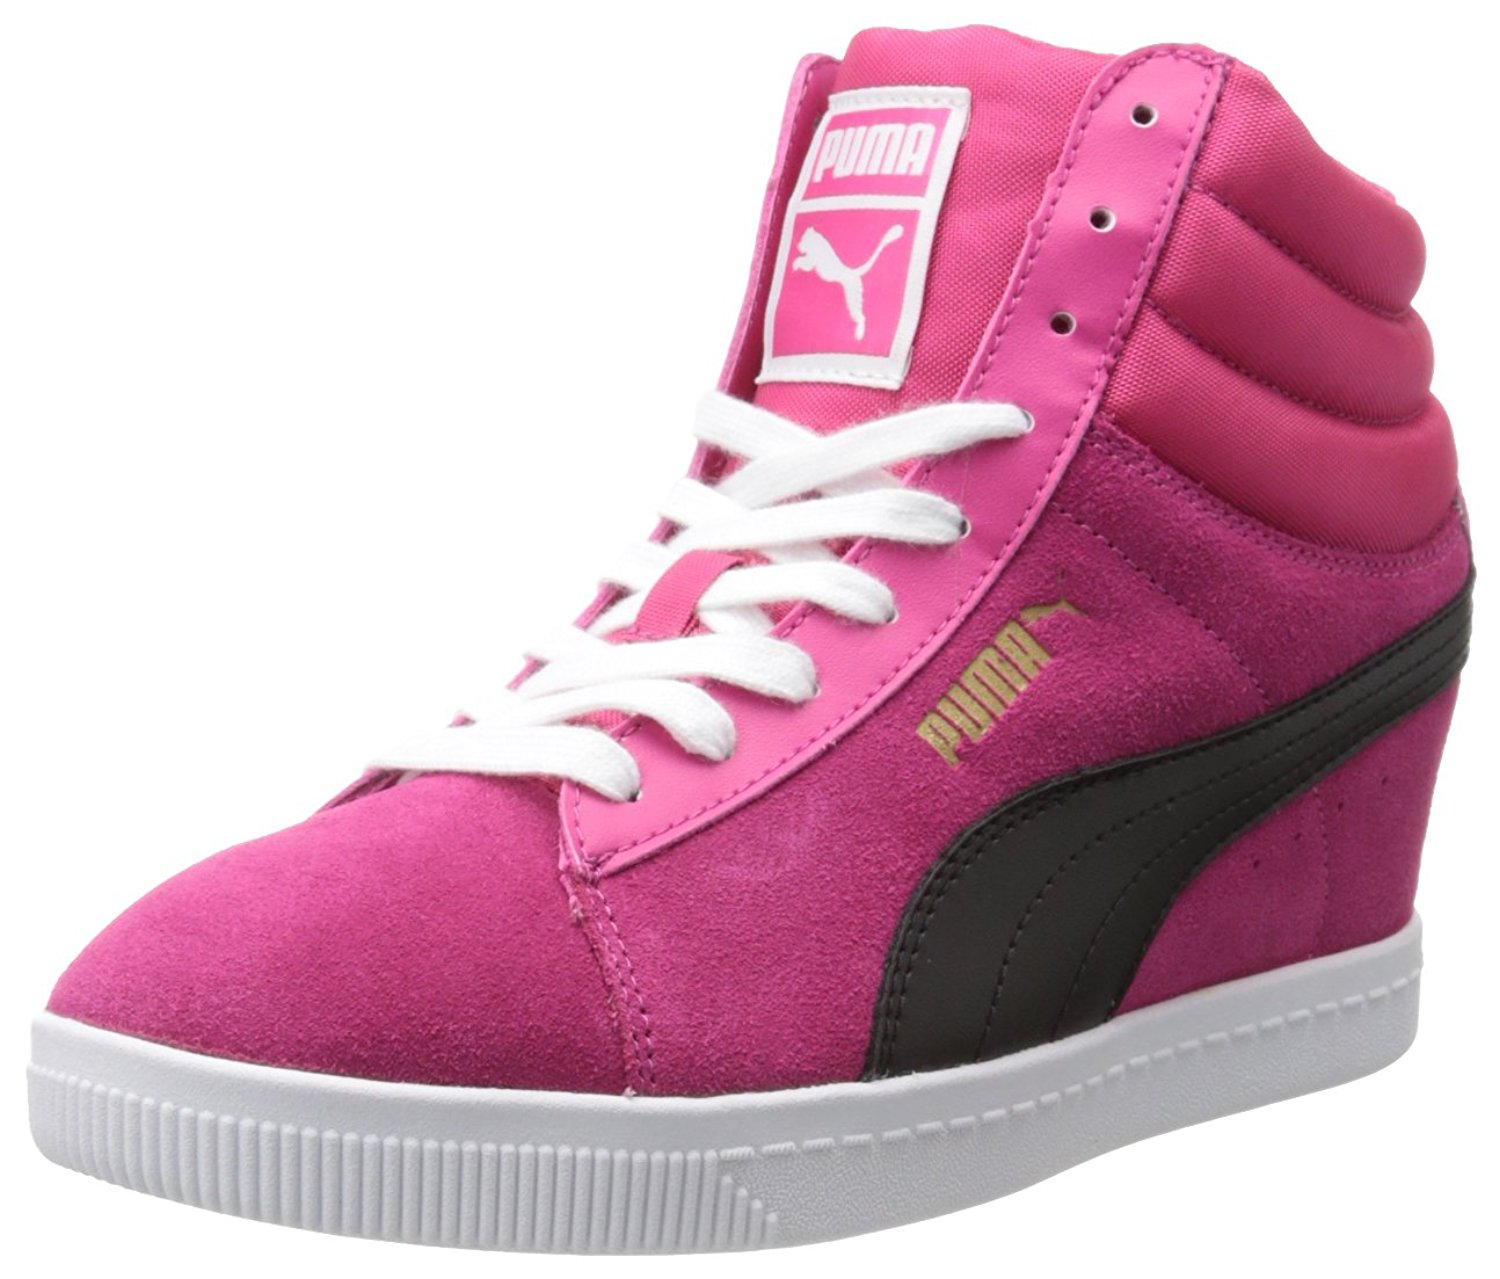 fddb12a4555a Get Quotations · PUMA Women s Classic Wedge Sneaker